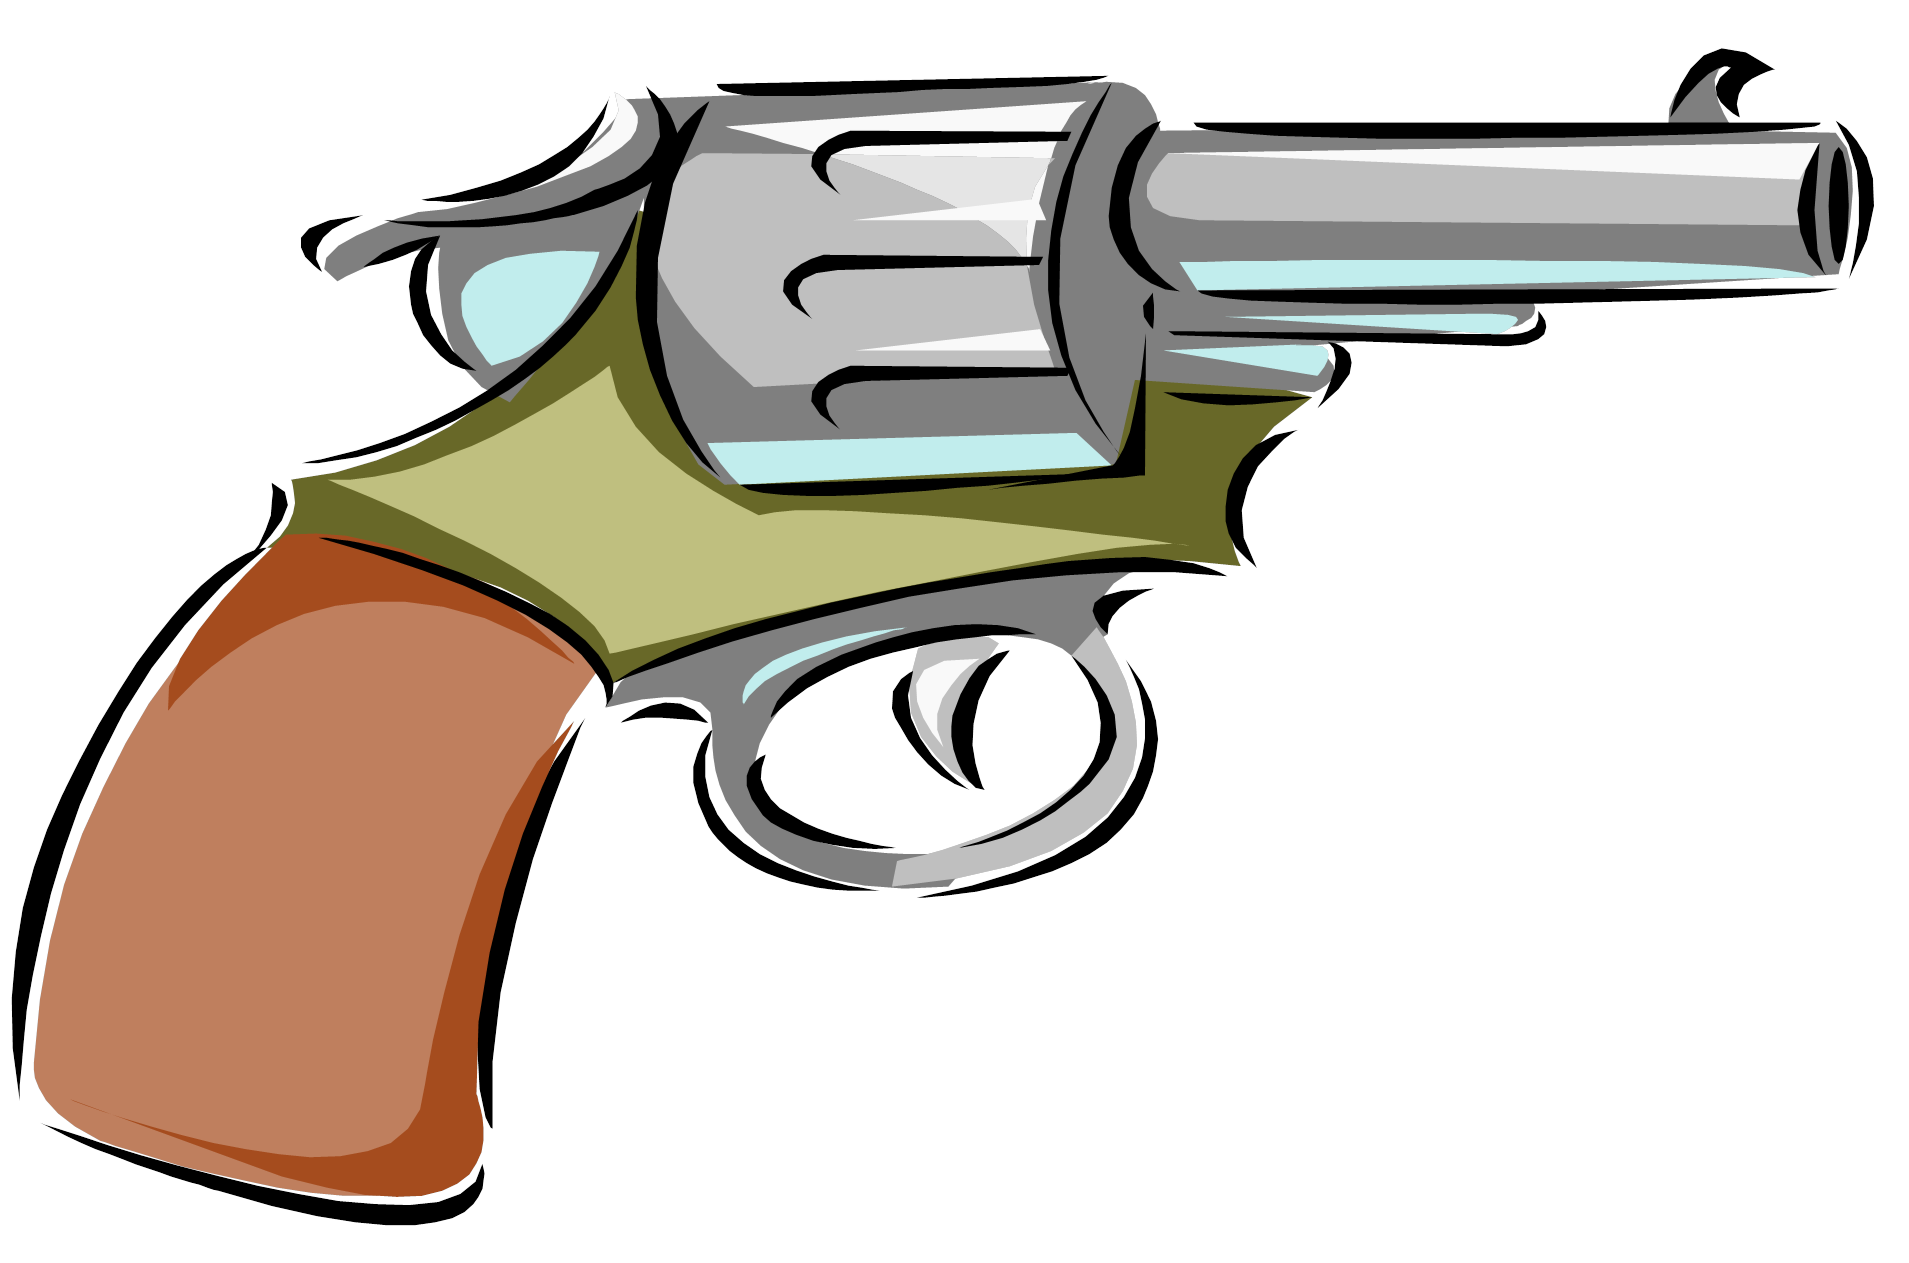 Clipart gun boy. Guns cartoon group free